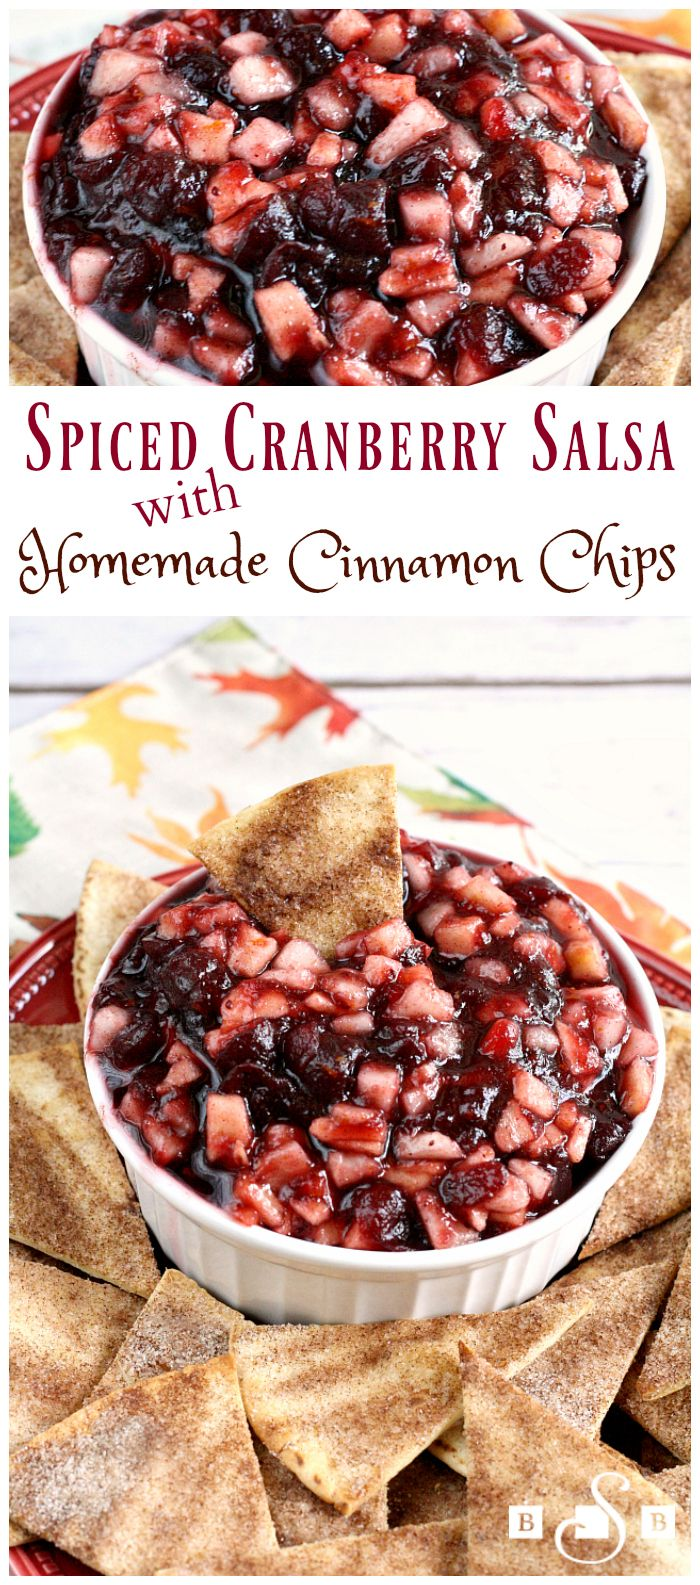 Spiced Cranberry Salsa with Homemade Cinnamon Chips - a delicious & festive fall appetizer! Butter With a Side of Bread #InspiredGathering AD